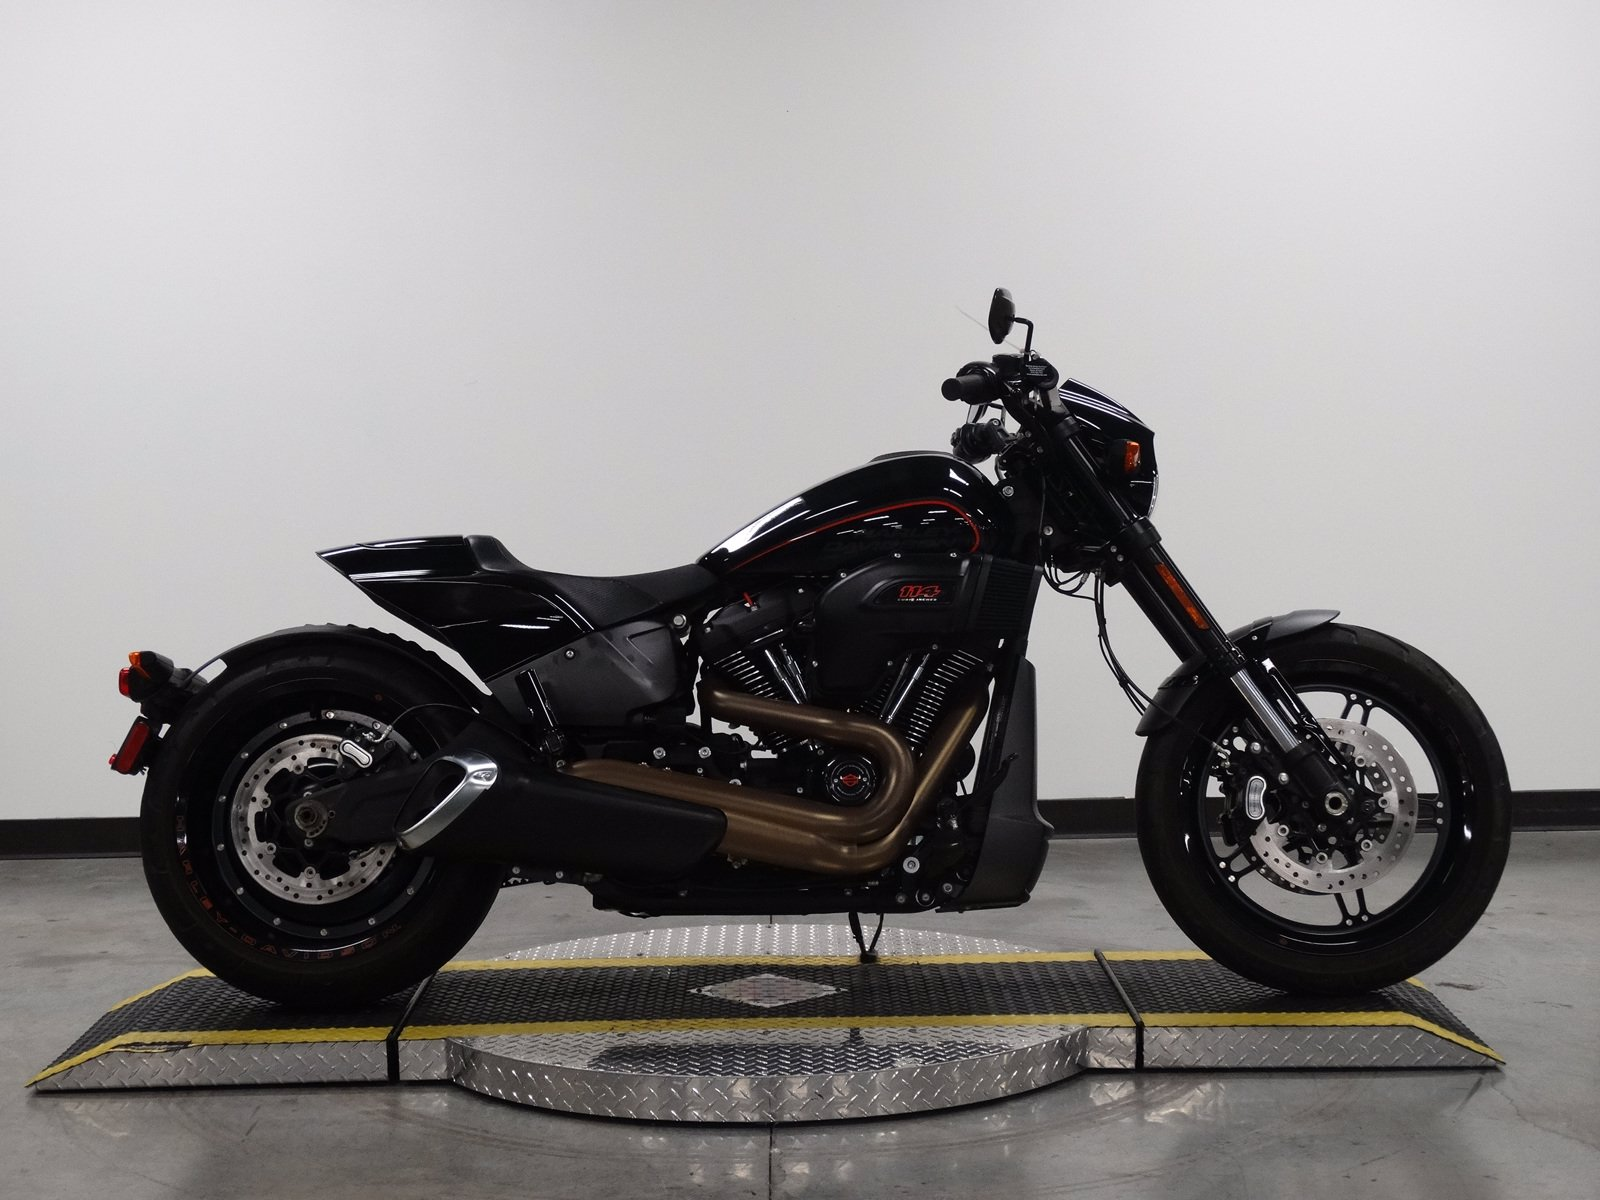 Pre-Owned 2019 Harley-Davidson Softail FXDR114